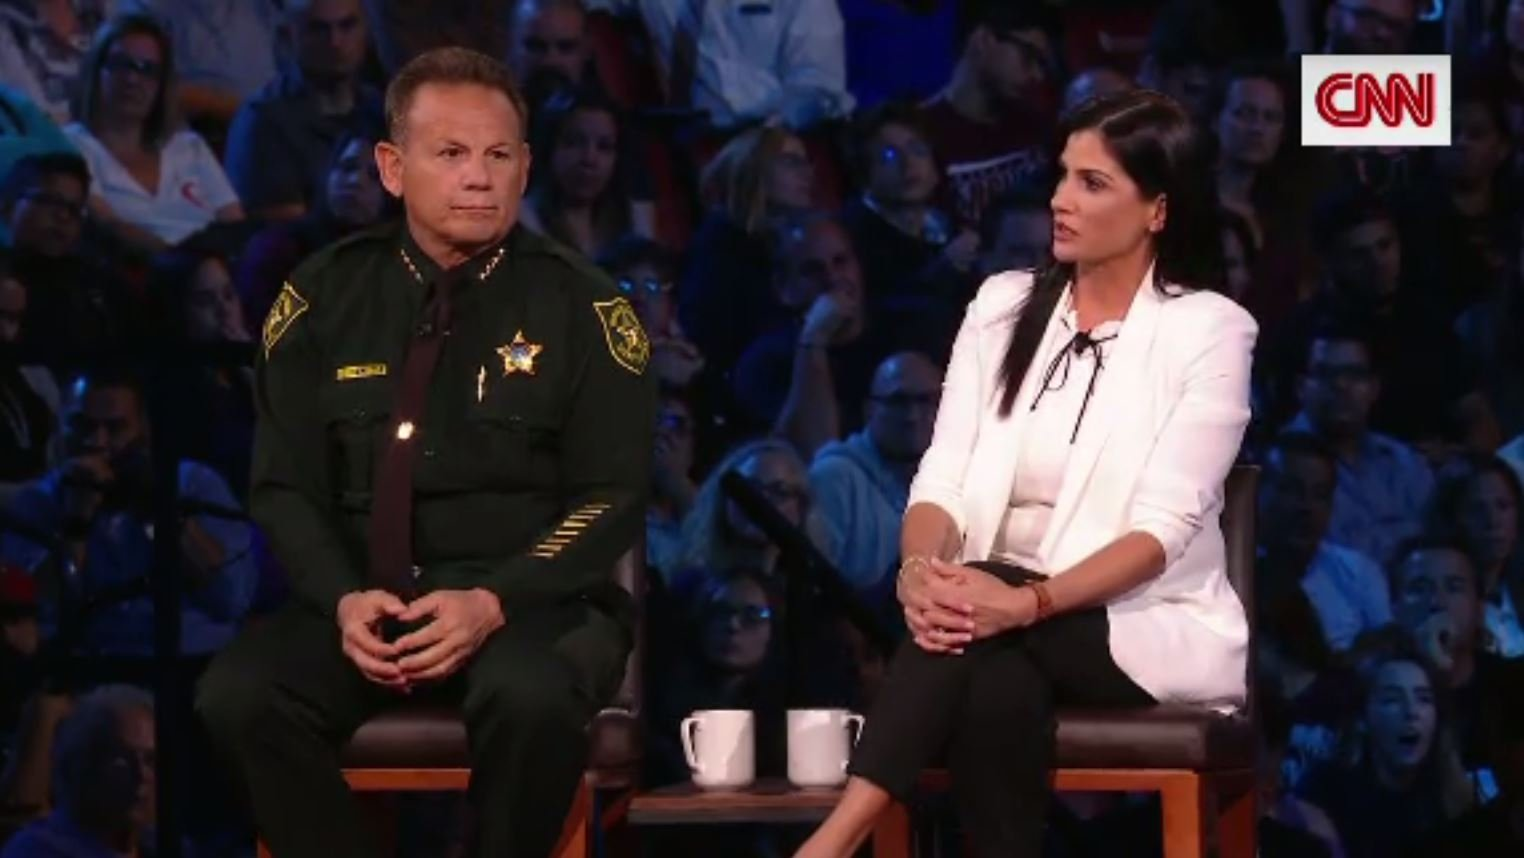 Second Amendment supporter Dana Loesch spoke with students and families affected by the Marjory Stoneman Douglas High School shooting at a CNN town hall on Wednesday, as Broward County Sheriff Scott Israel sat near. (Source: CNN)